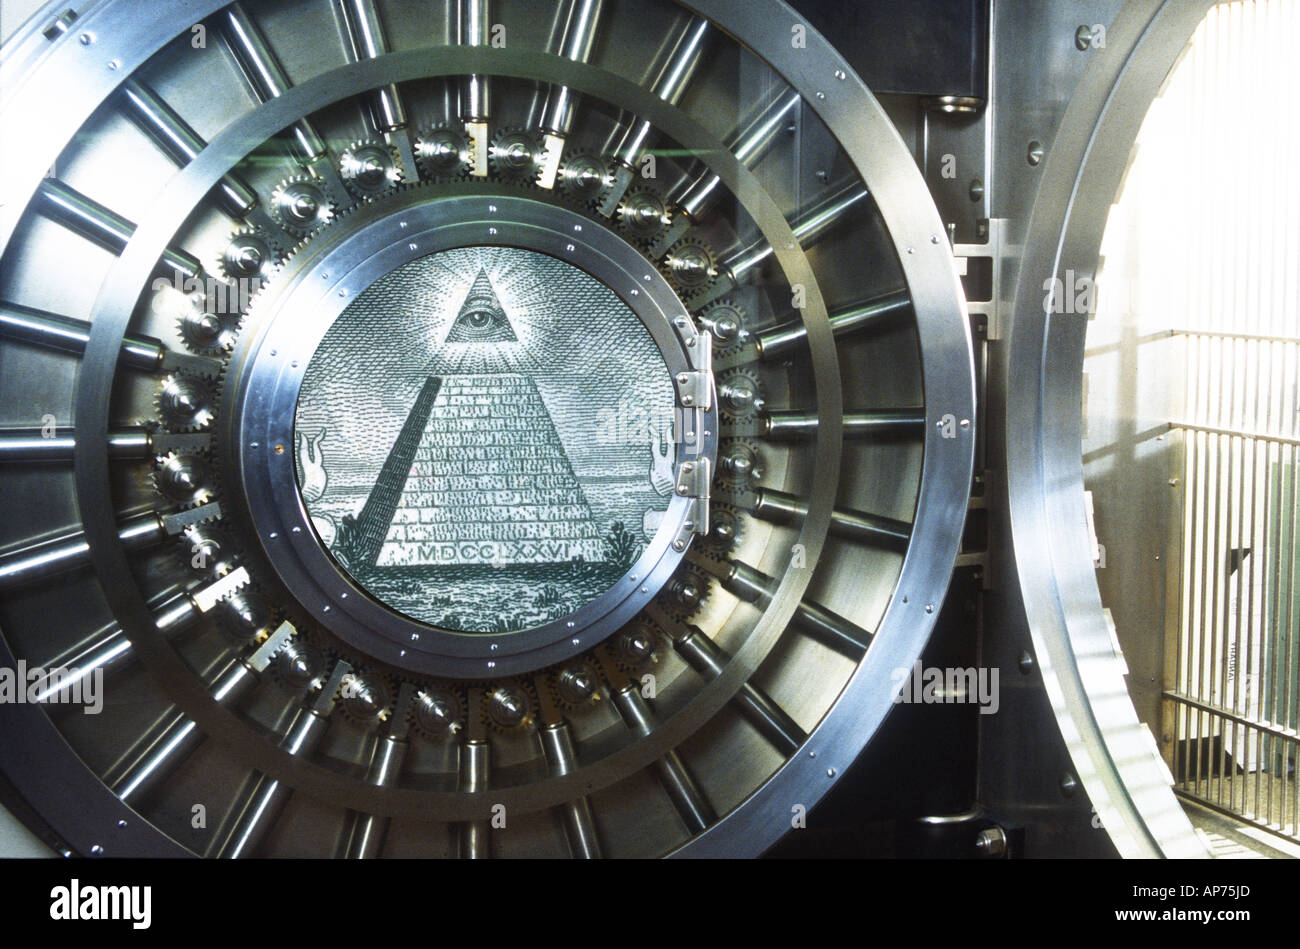 heavy steel round vault door in bank with US dollar pyramid symbol composited on door - Stock Image